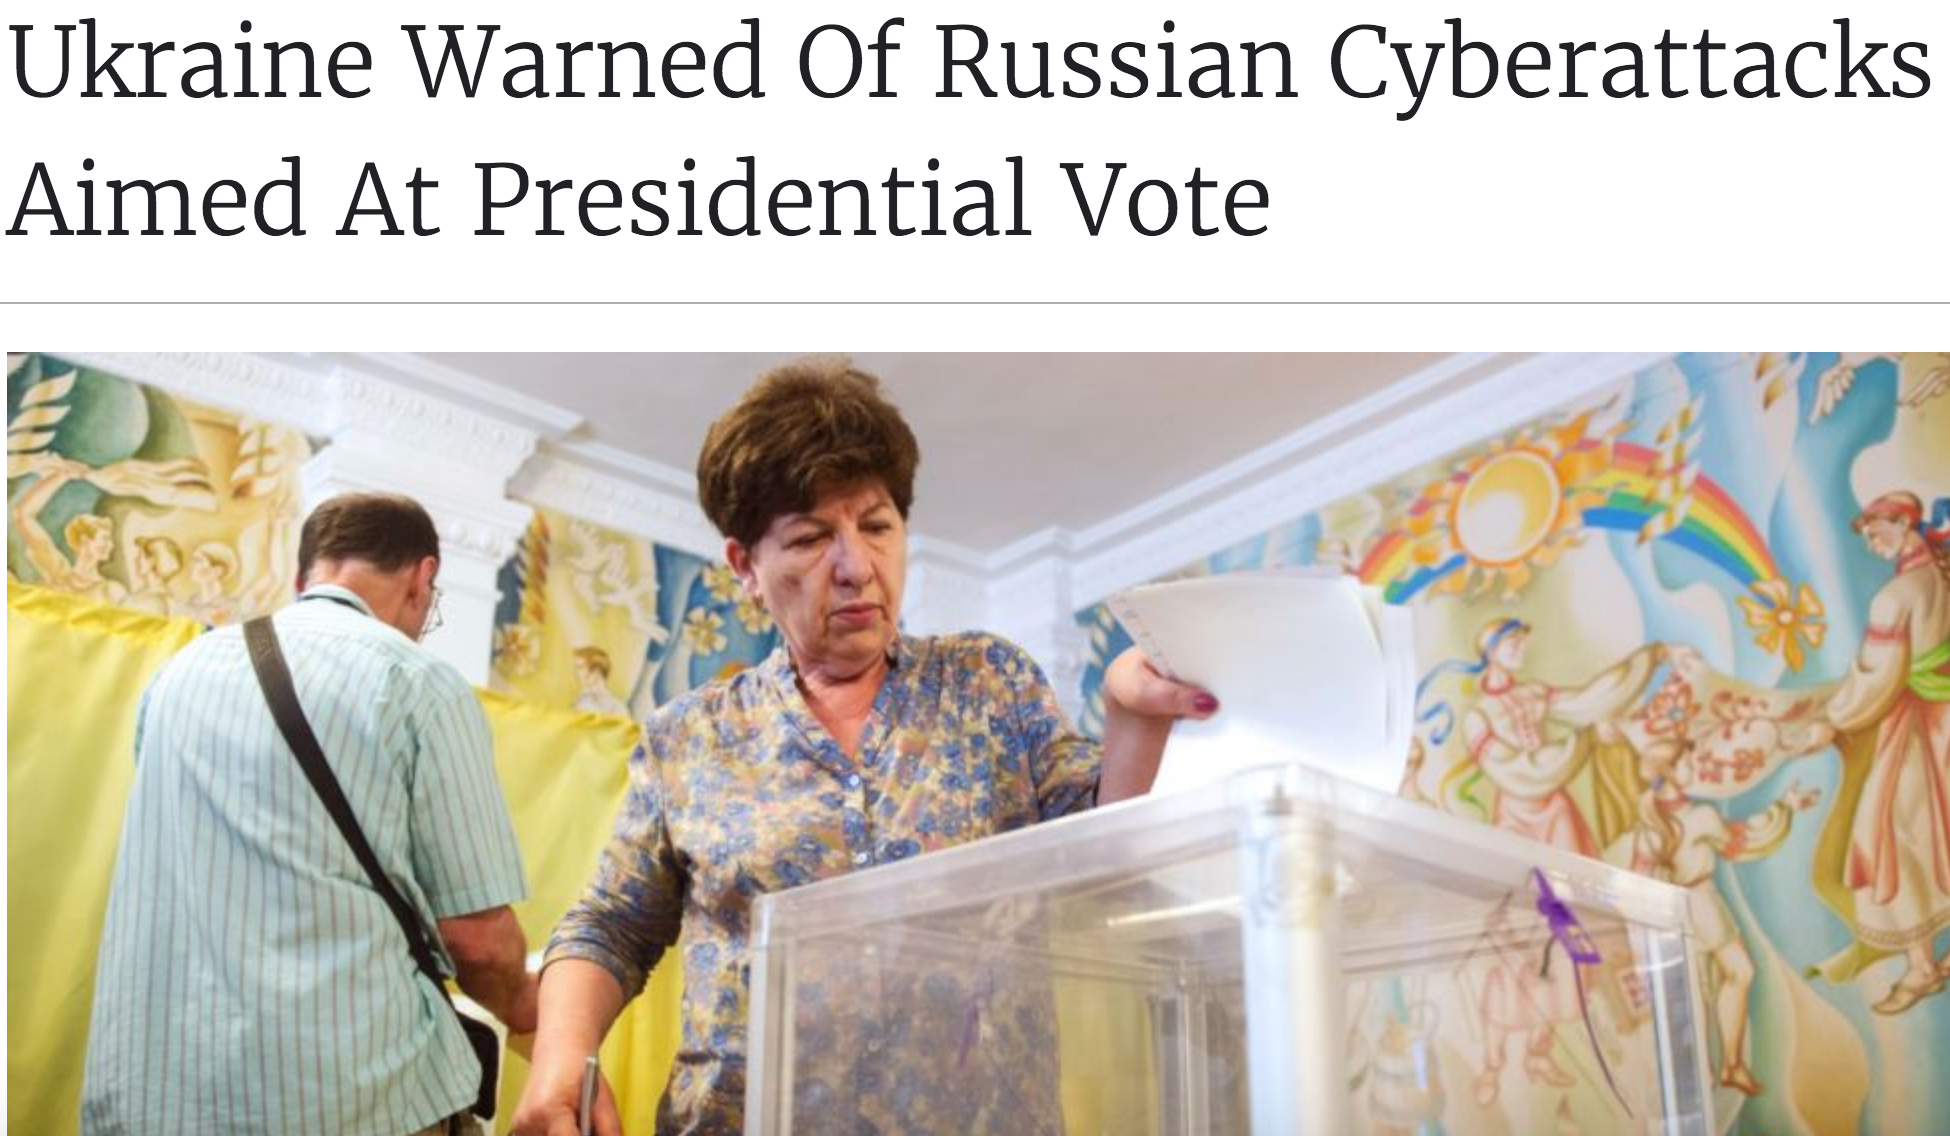 RFE/RL: Ukraine Warned Of Russian Cyberattacks Aimed At Presidential Vote